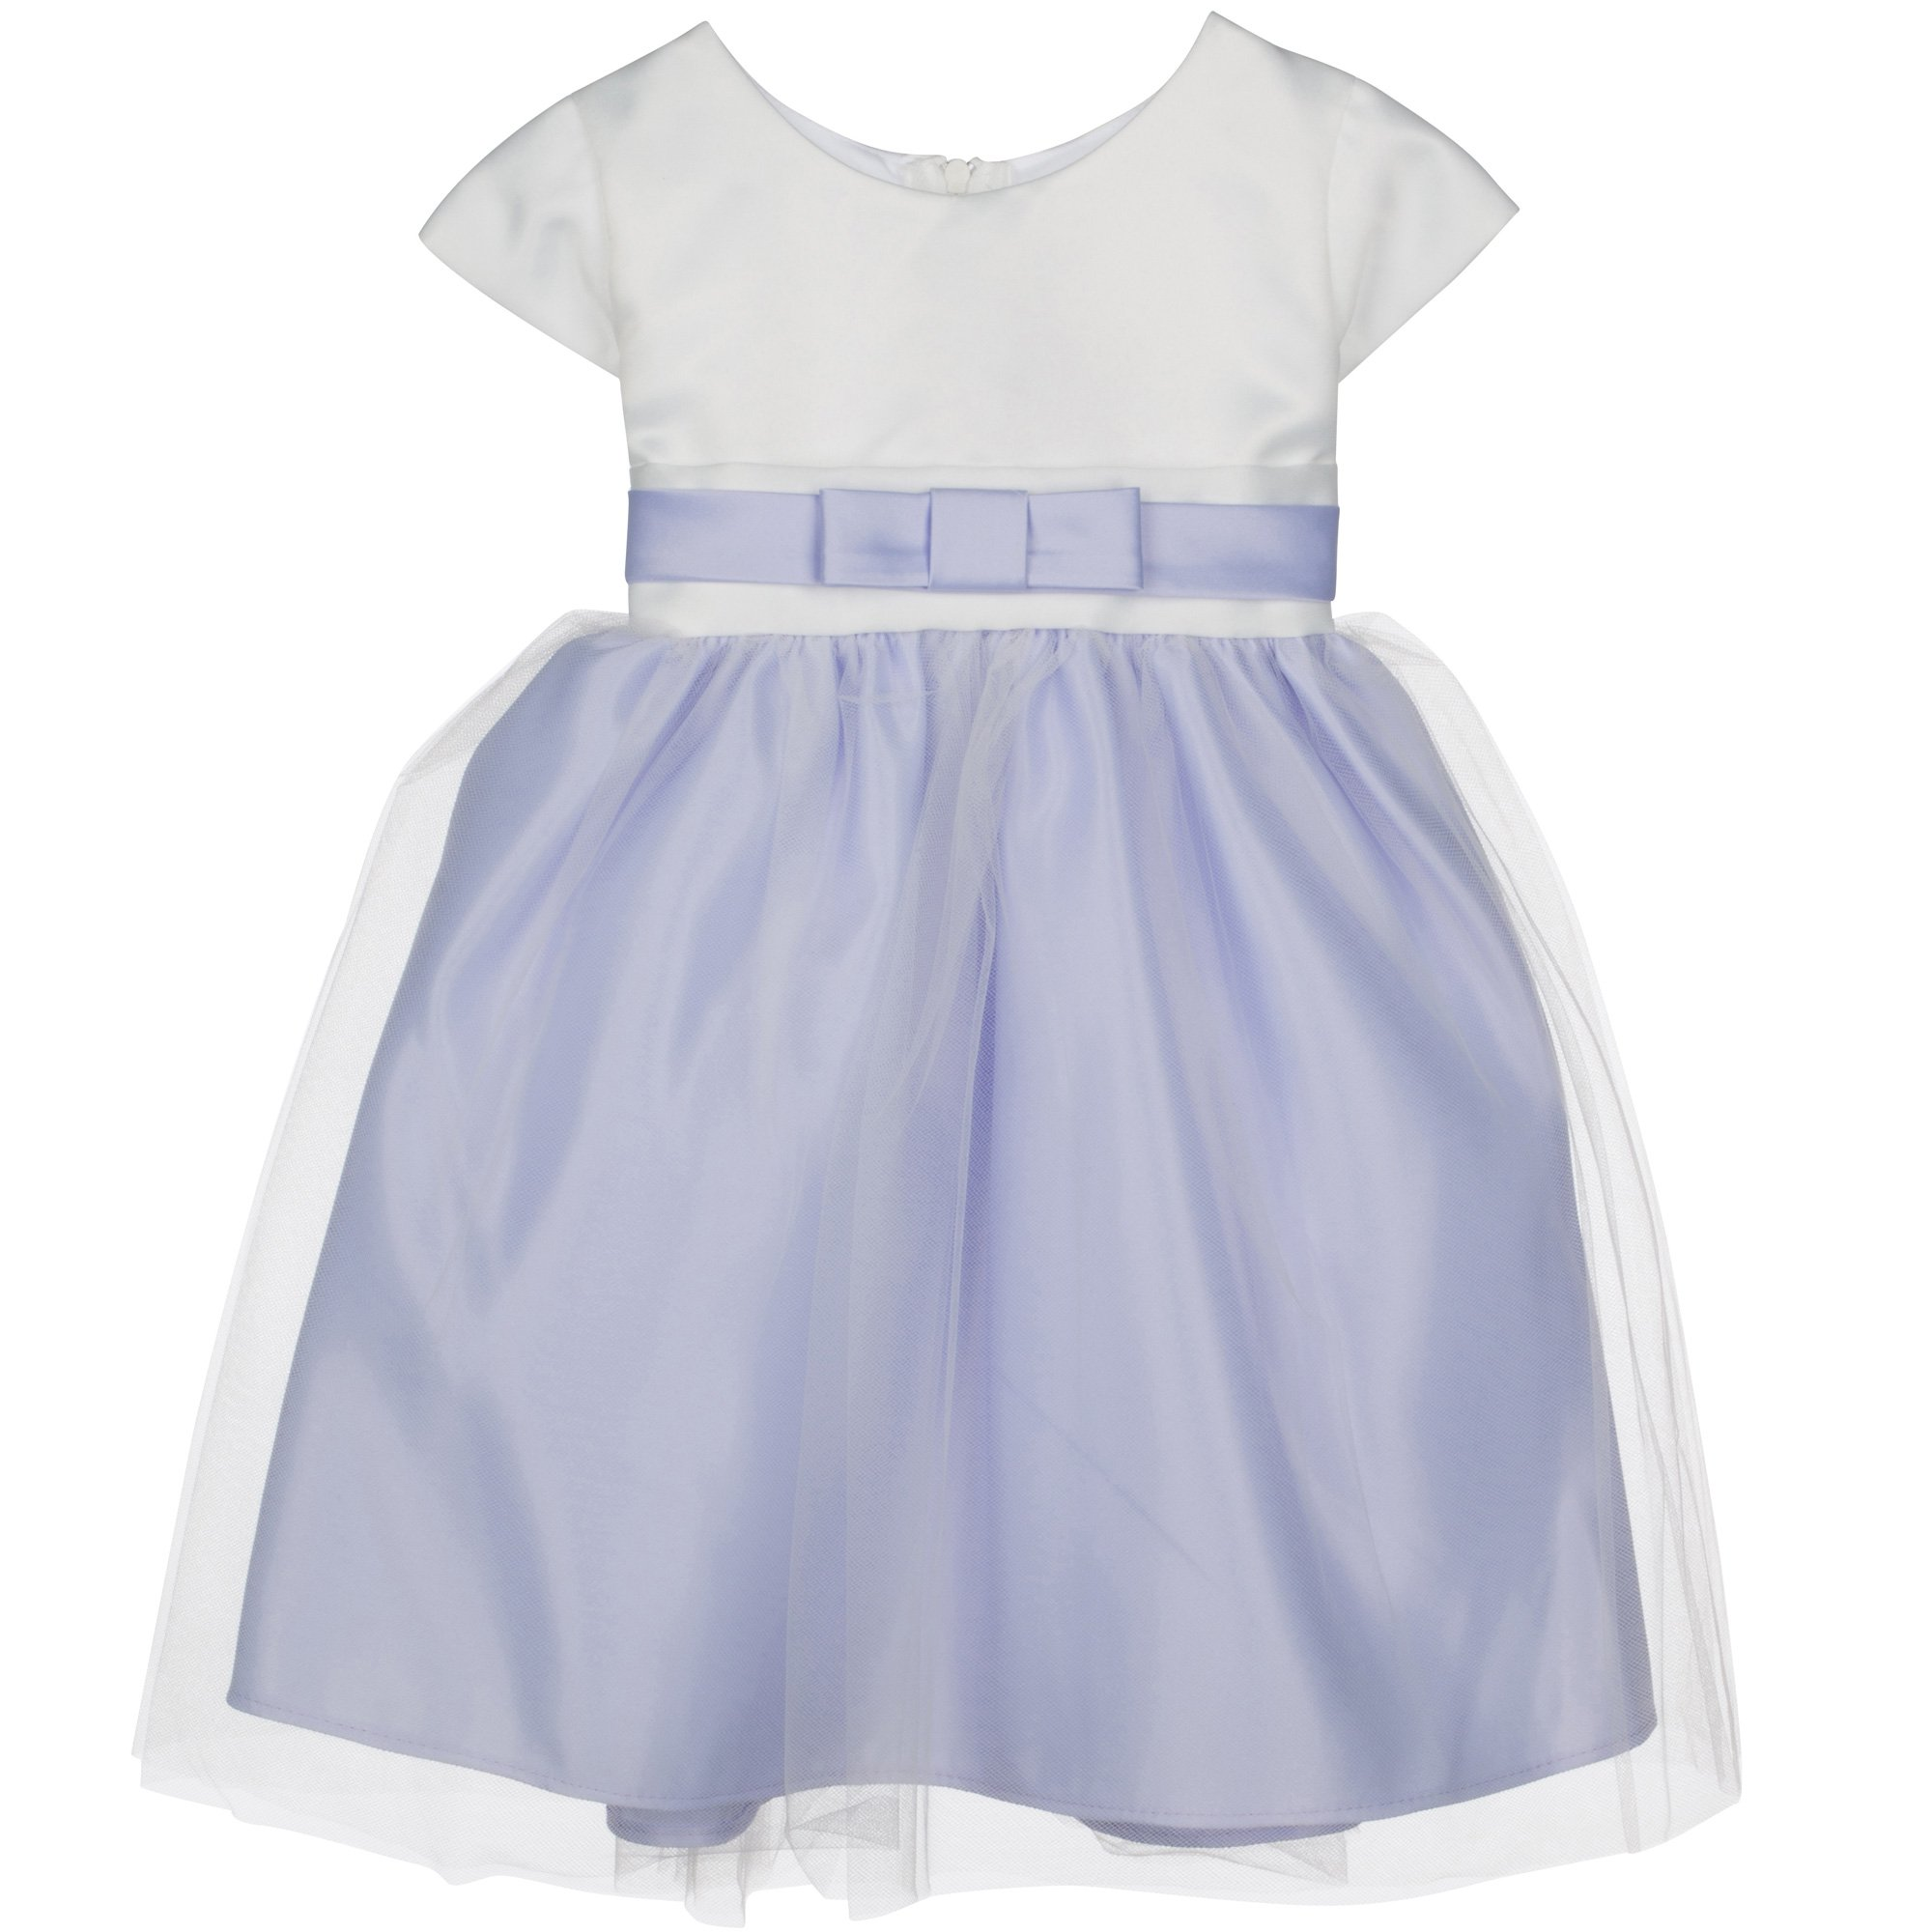 Lilac Satin \u0026 Tulle Special Occasion Baby Dress from Sweet Kids